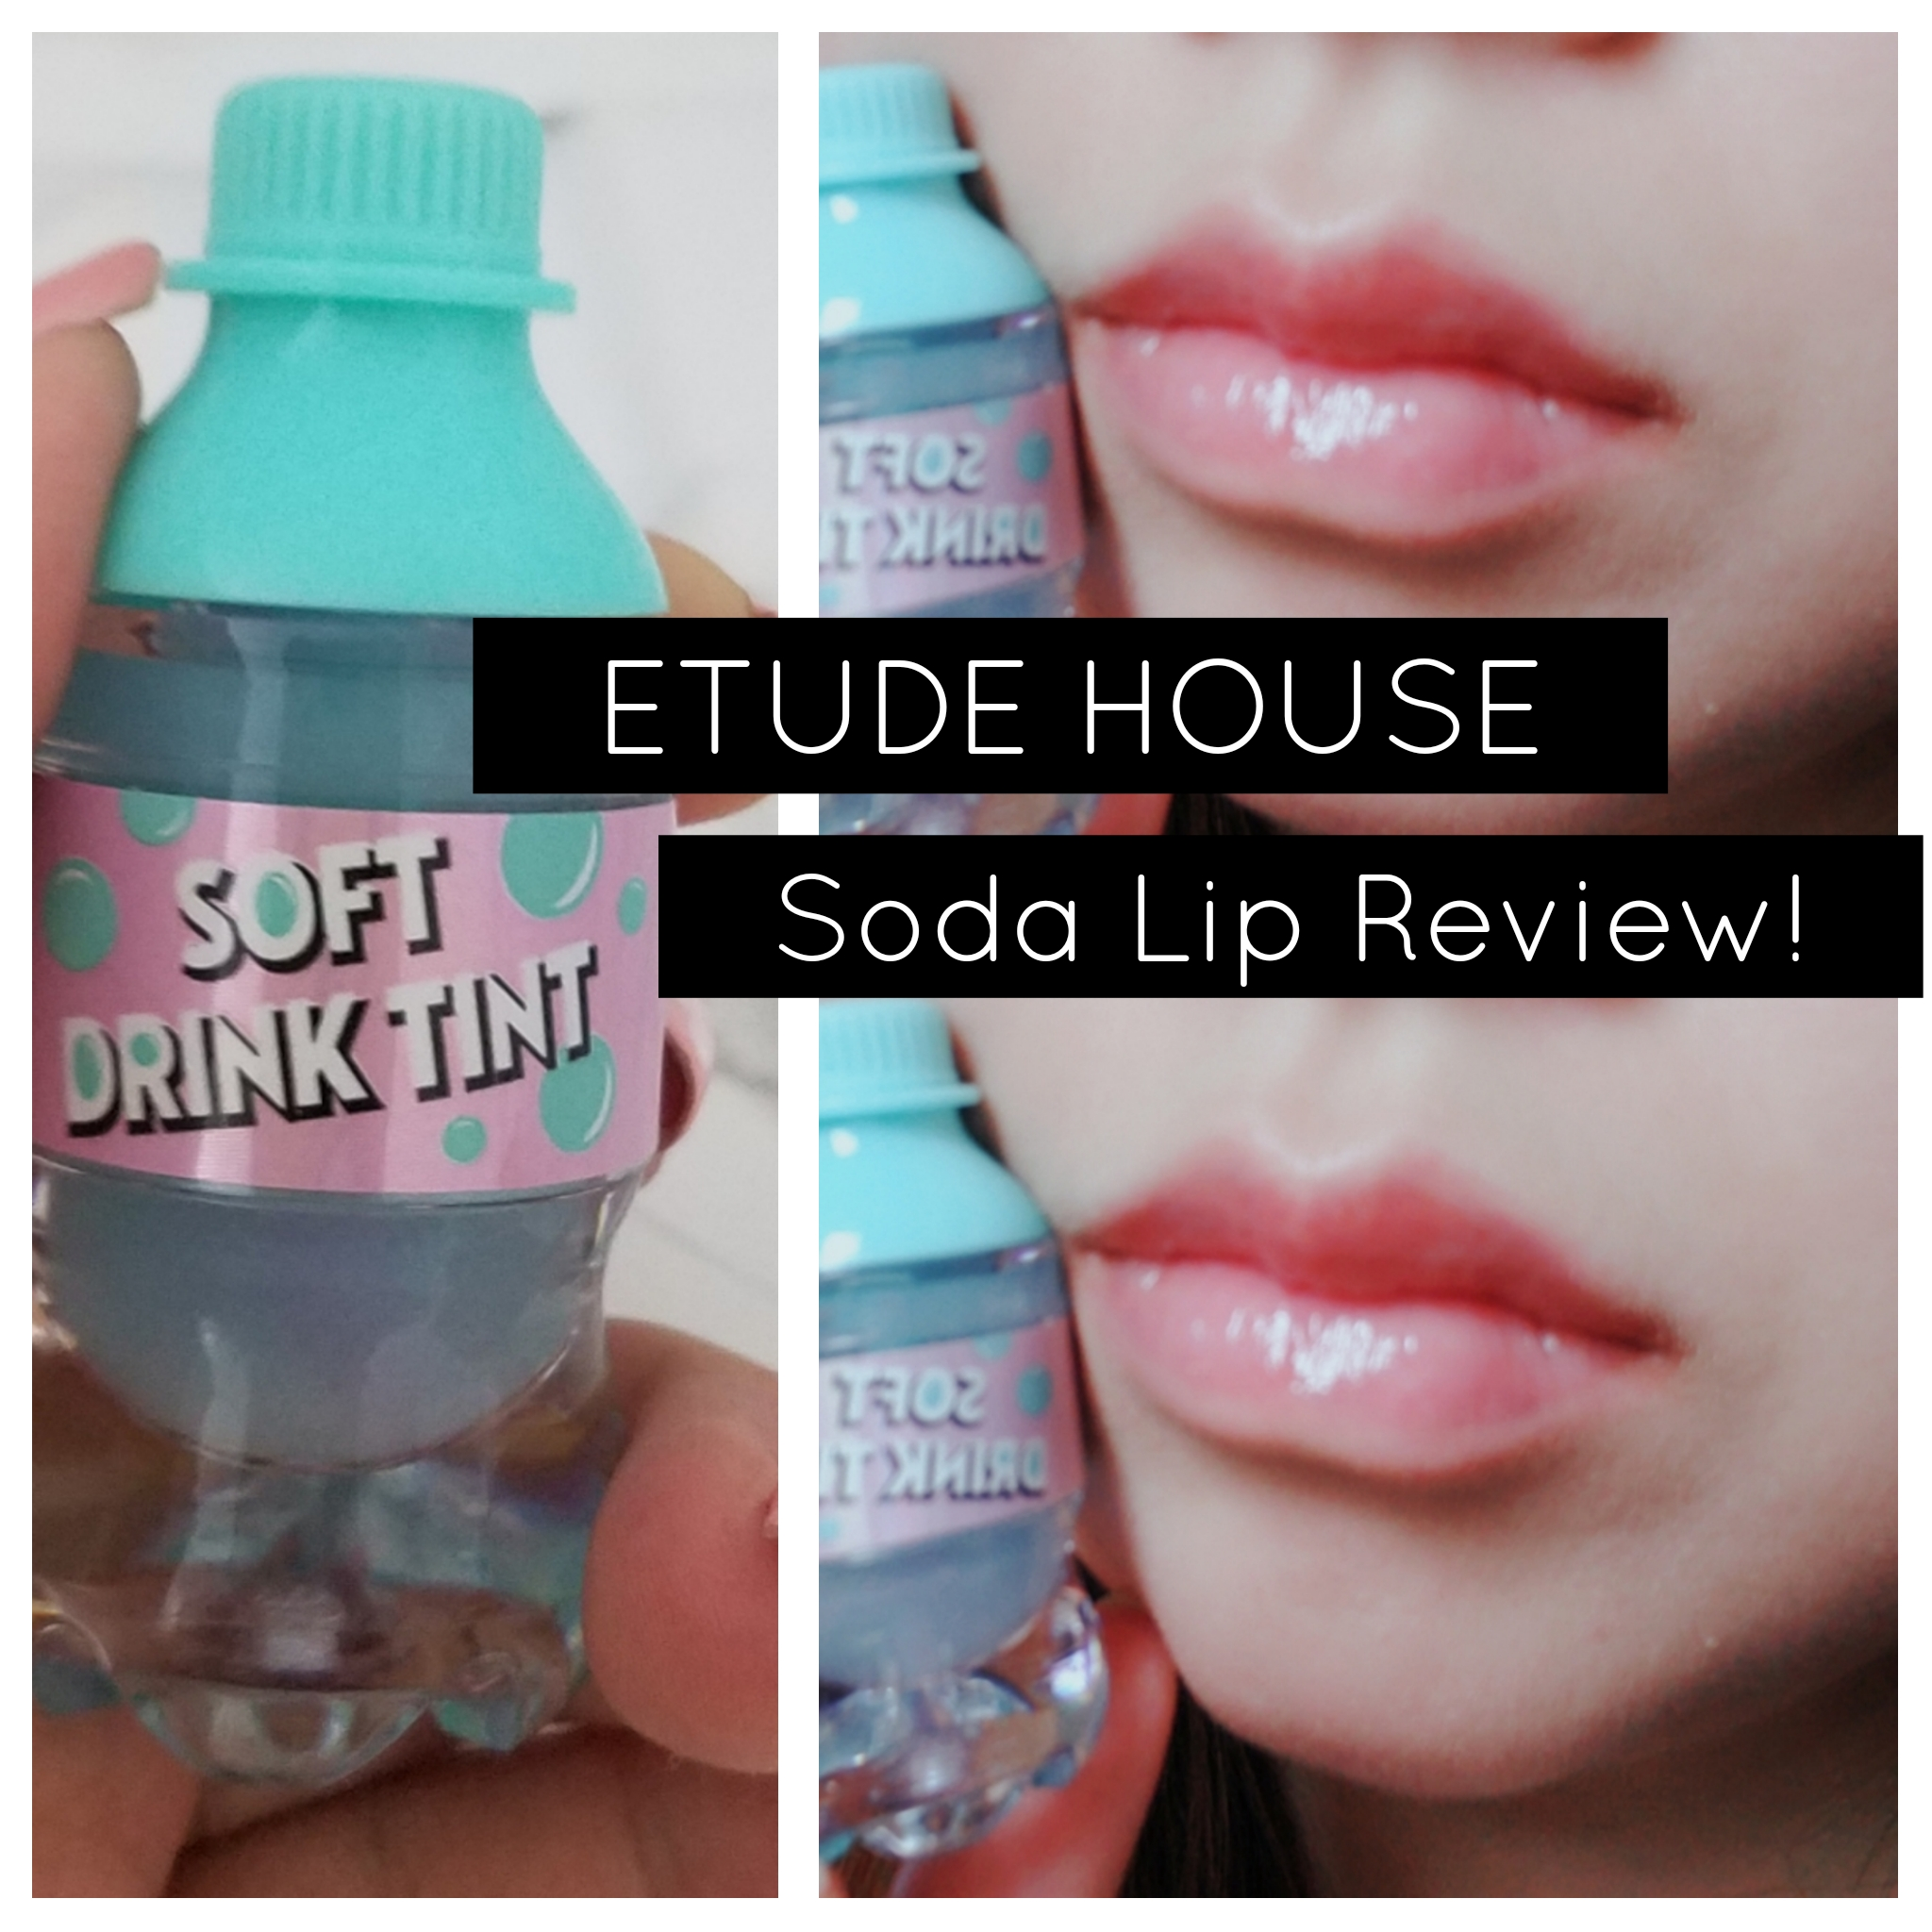 ::REVIEW:: Etude House Soft Drink Tint!